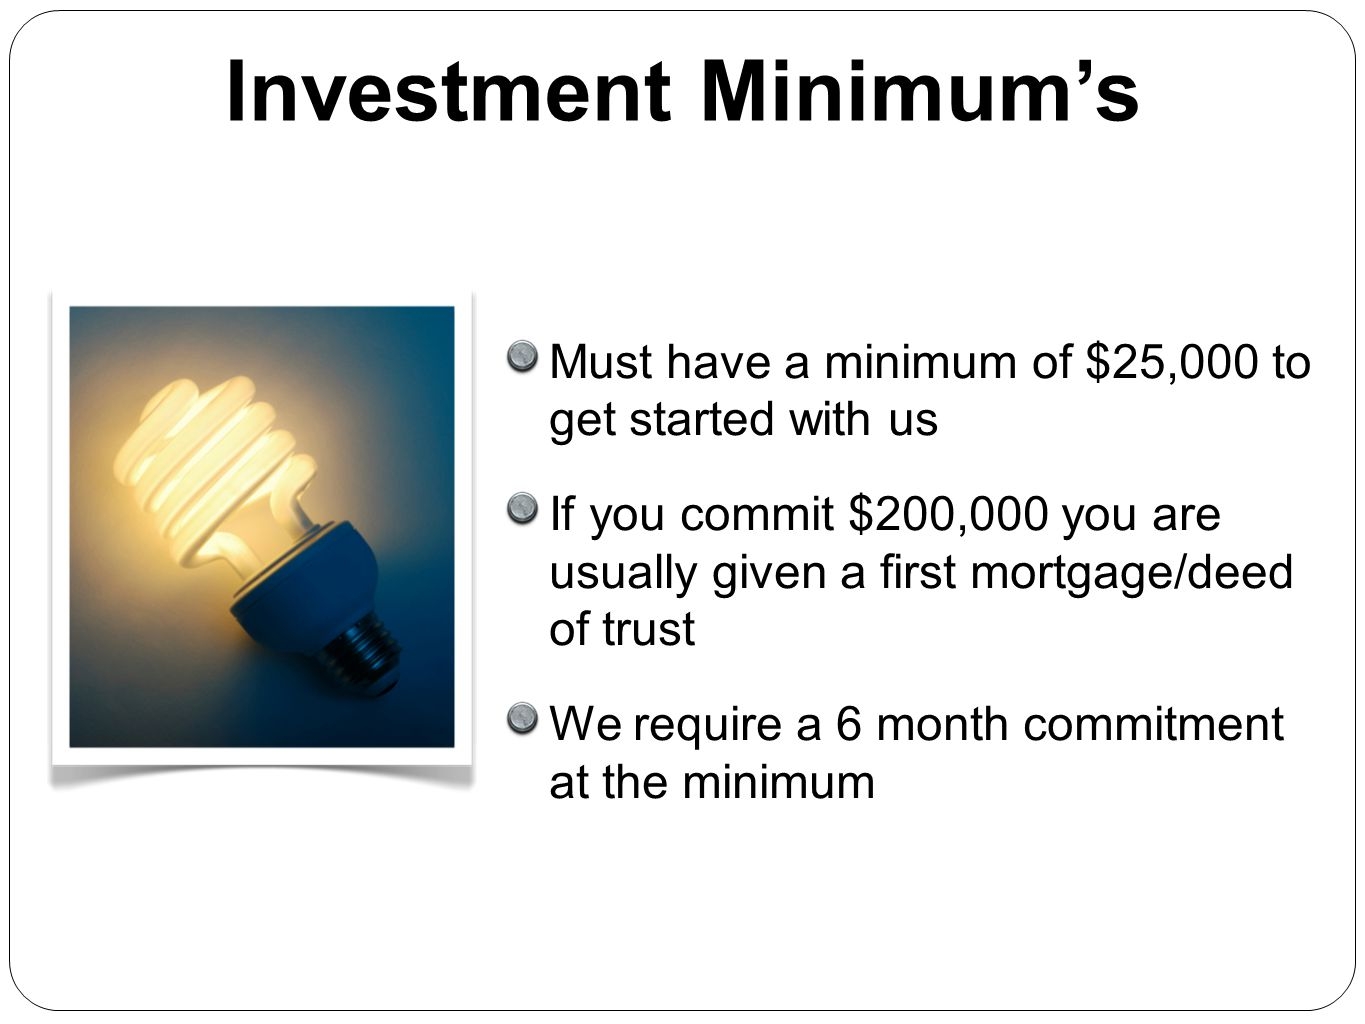 Investment Minimum's Must have a minimum of $25,000 to get started with us.